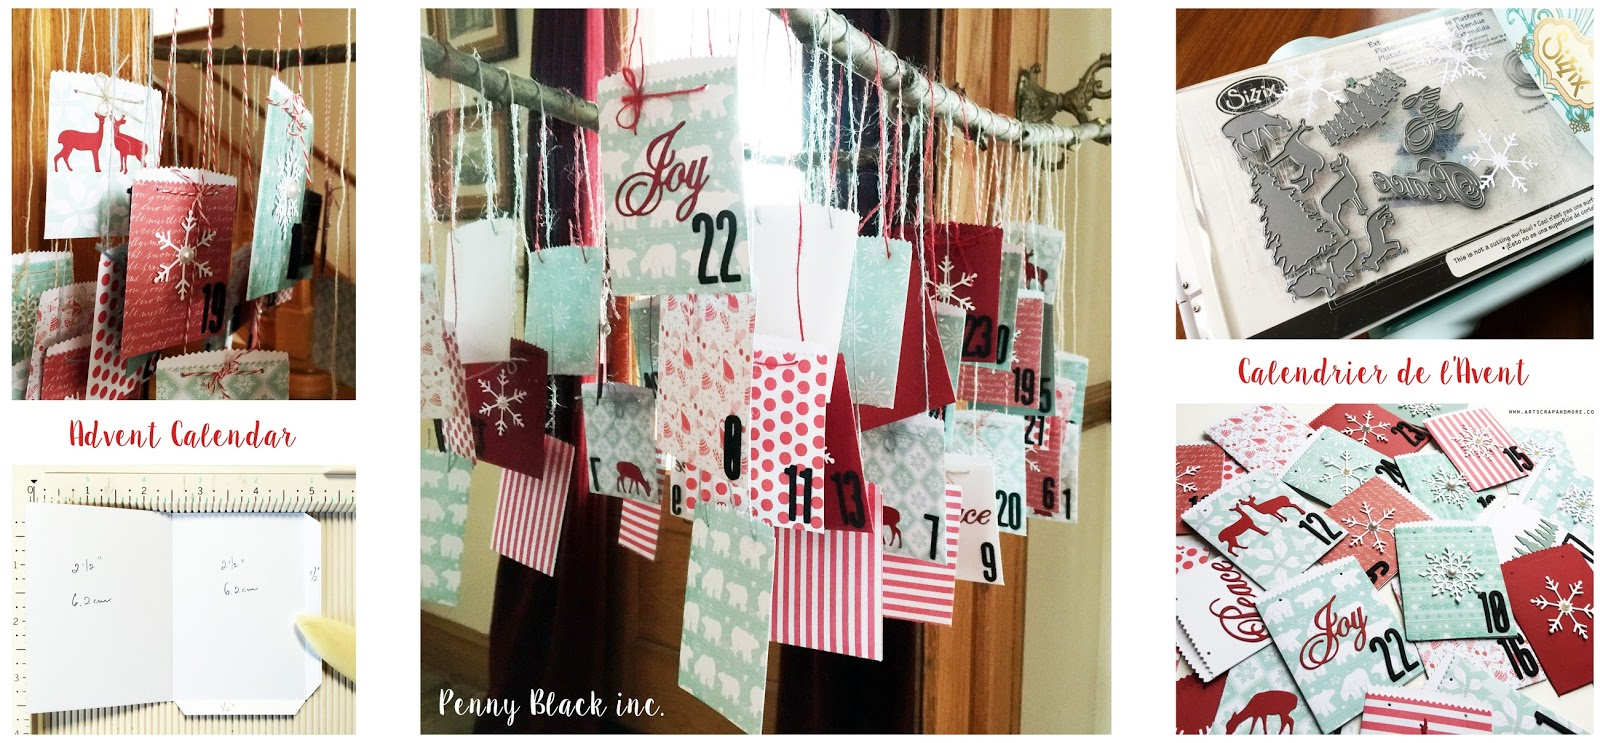 Tuto Calendrier De Lavent Scrapbooking.Art Scrap More Alexandra S Sunday Scrapbooking Advent